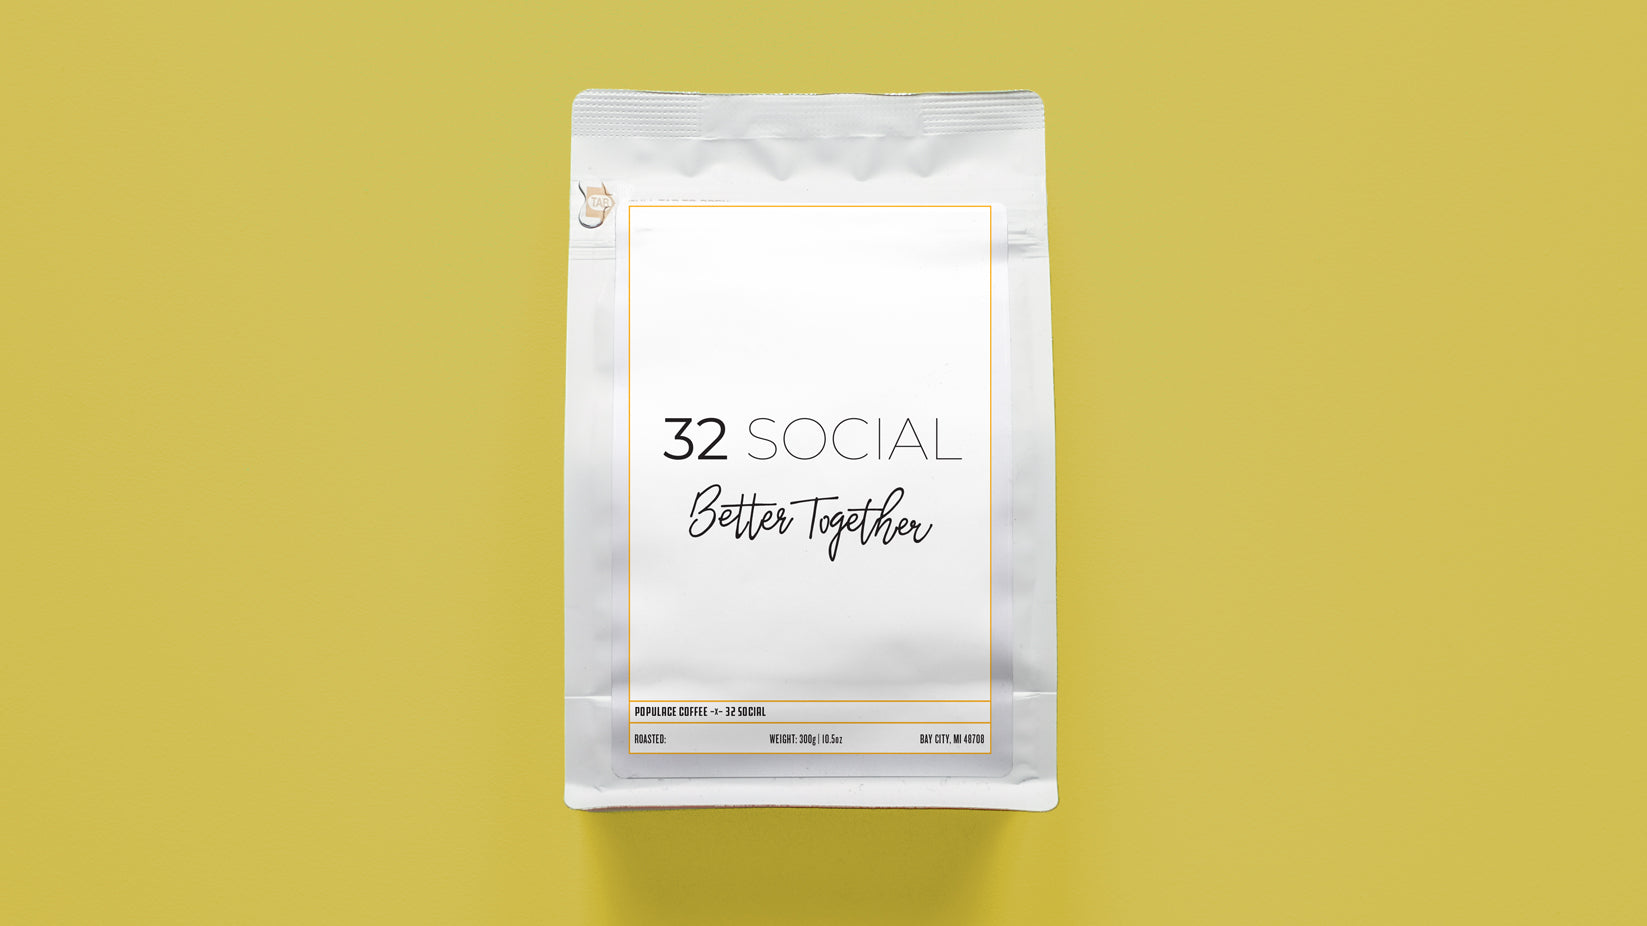 32 Social Cafe Support Coffee